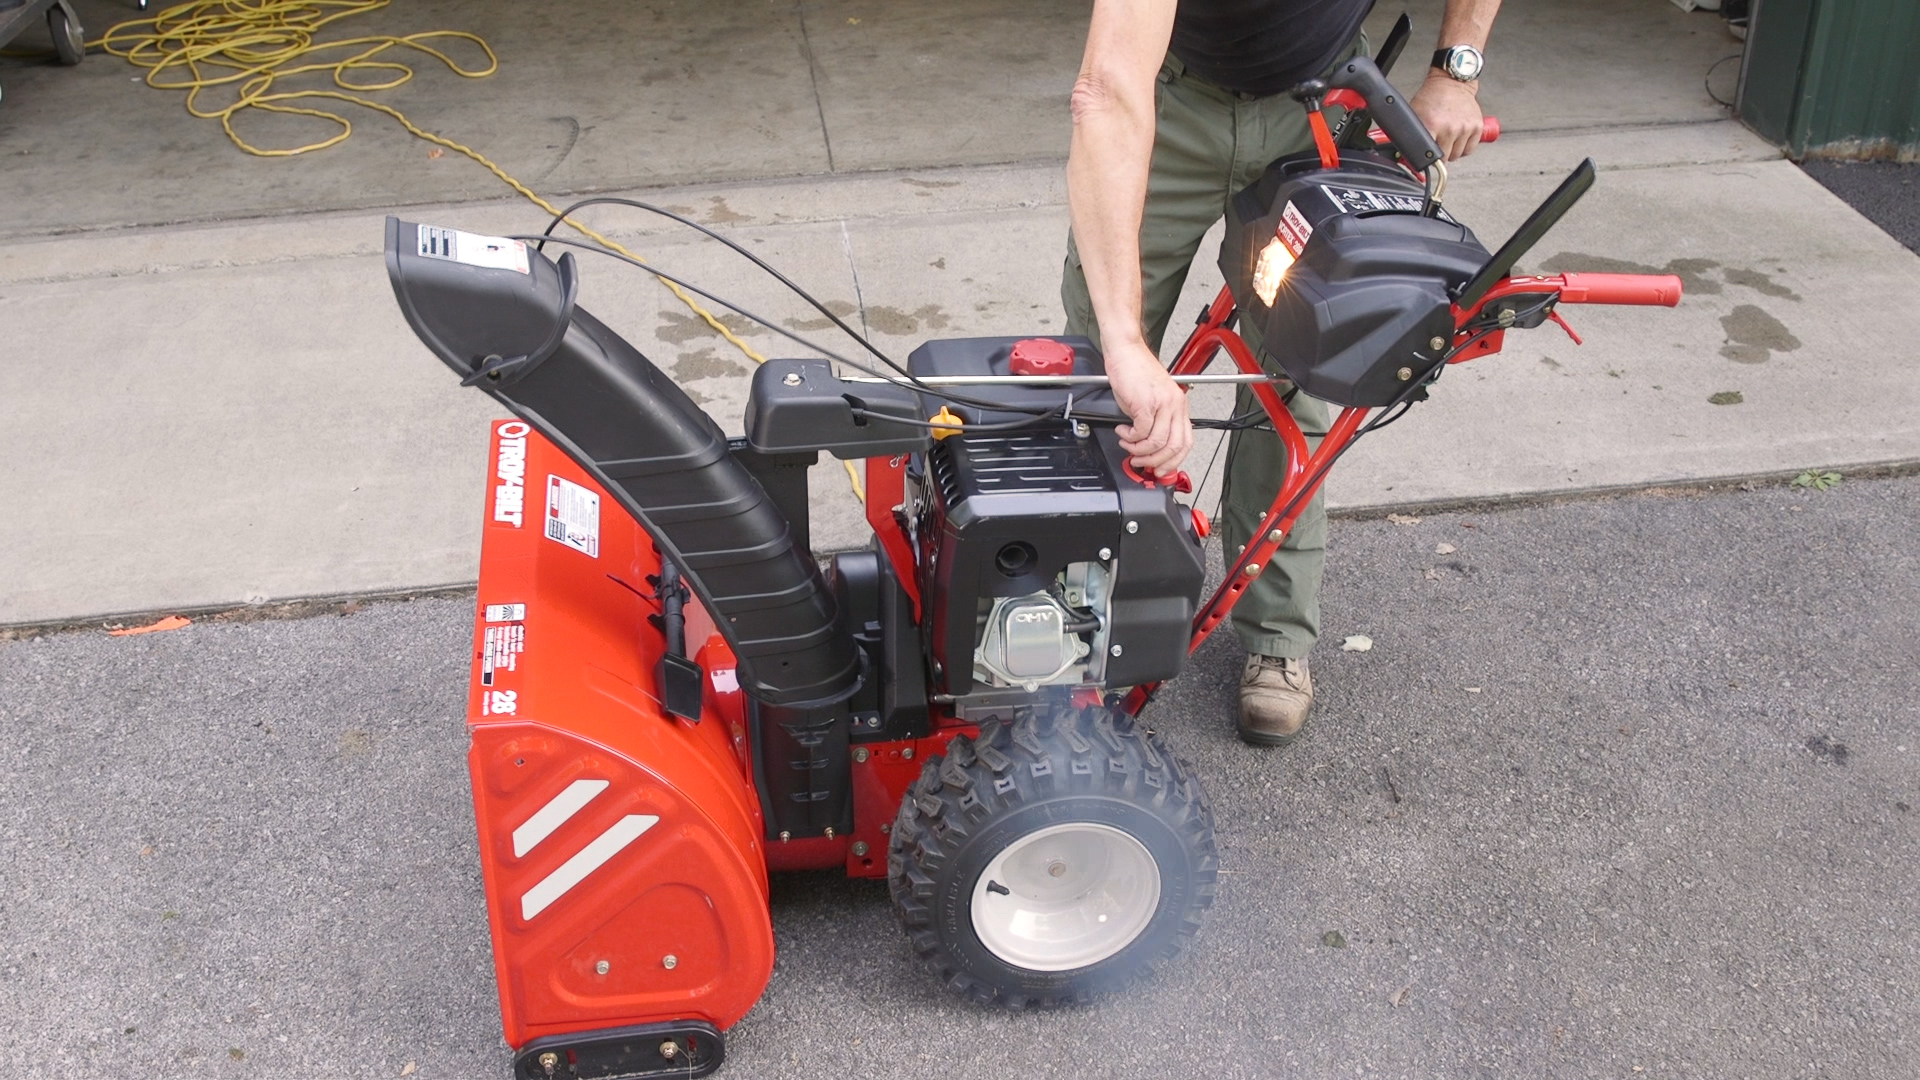 Used Snow Blowers How To Get Your Snow Blower Ready For Winter Consumer Reports